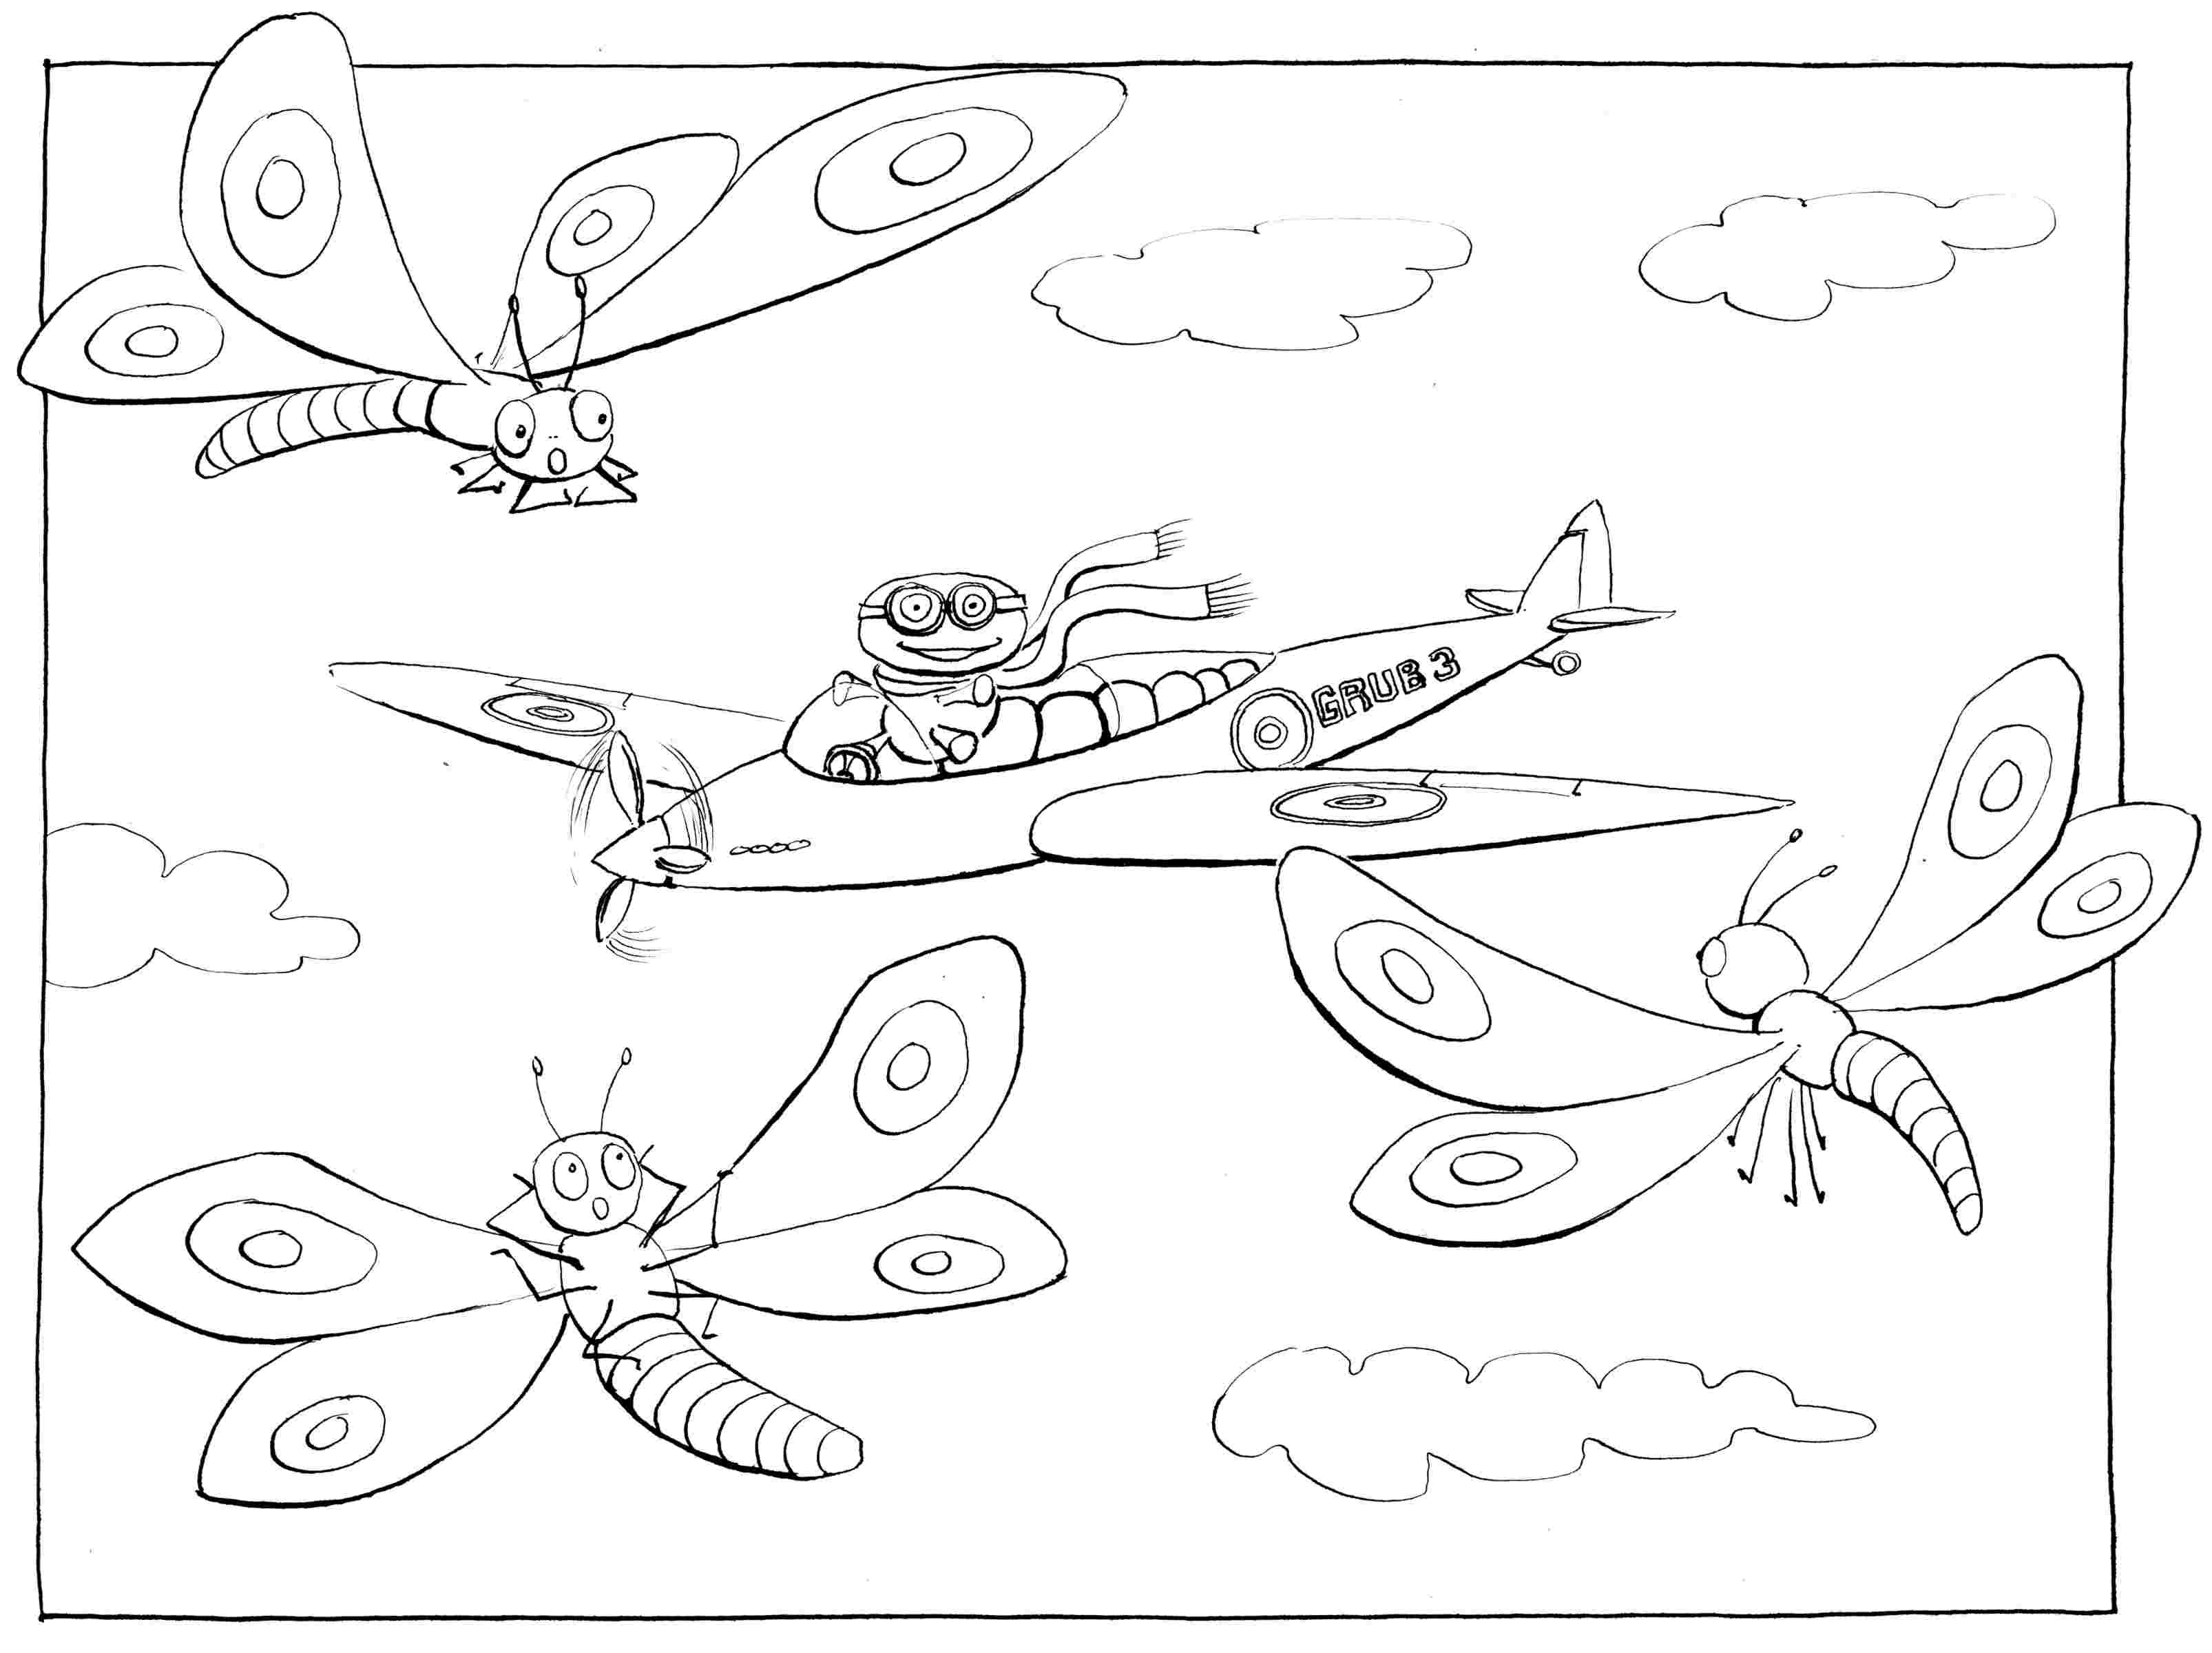 Learning to Fly: part III - colouring-in drawing - to download, right click and save, print out and colour in!